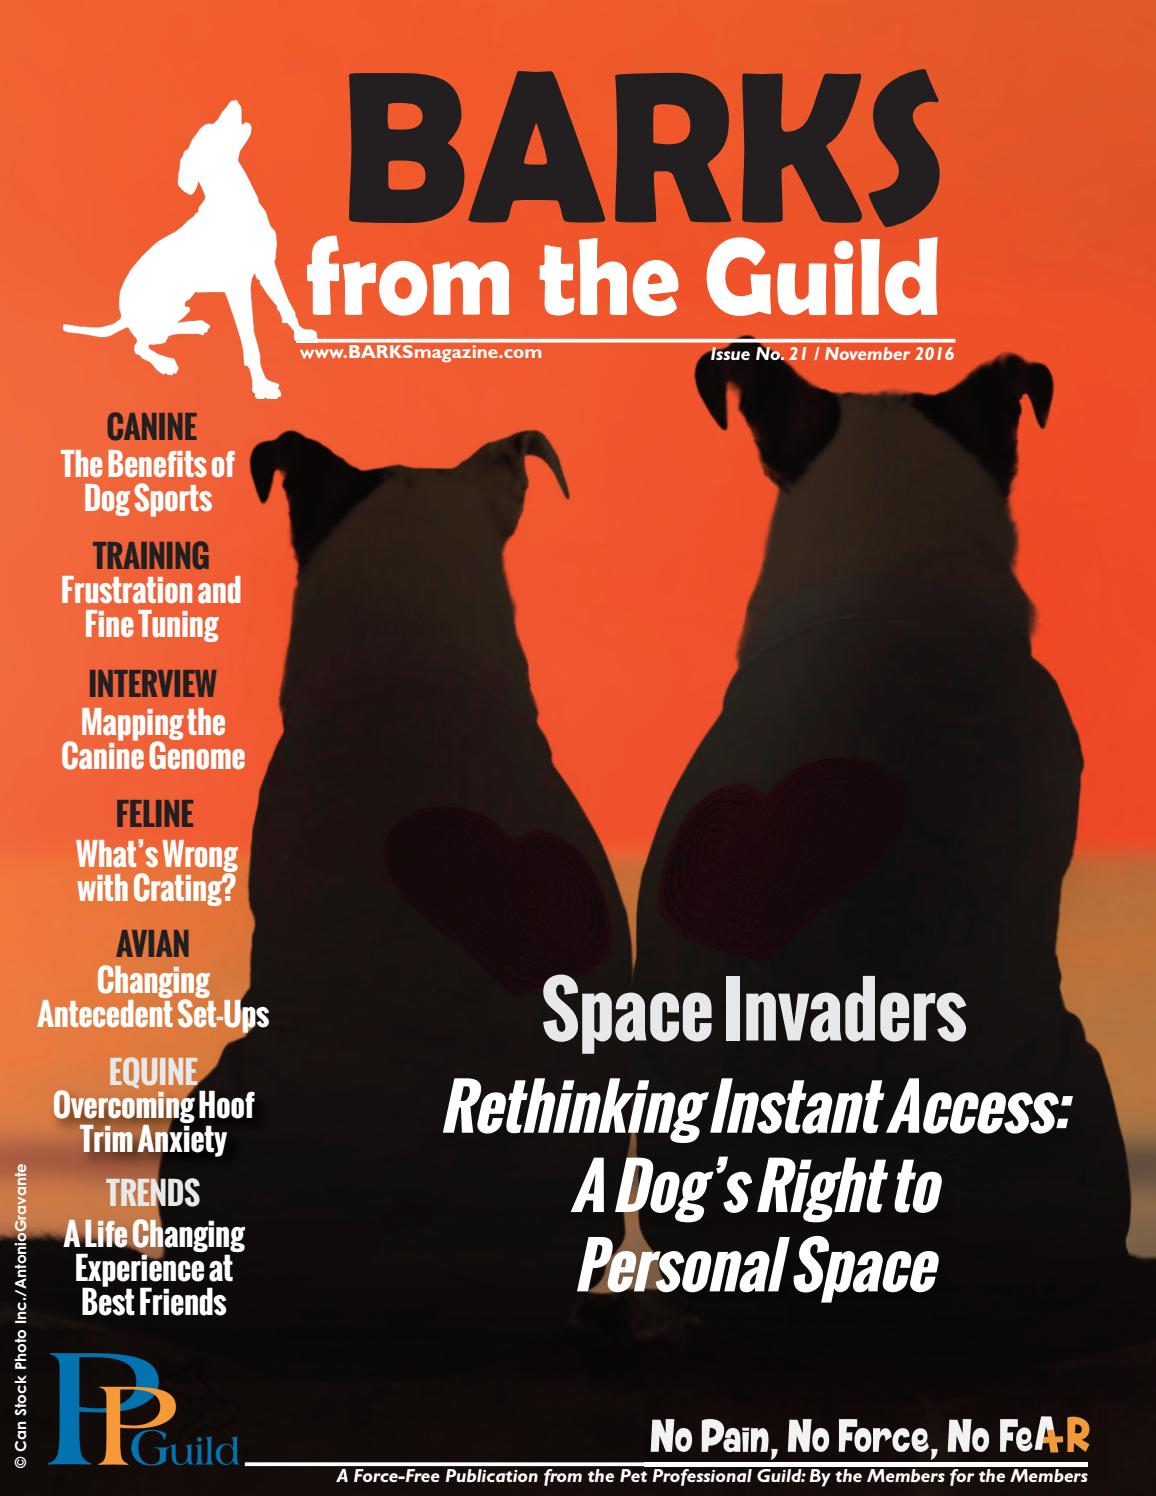 0495def75a BARKS from the Guild November 2016 by The Pet Professional Guild - issuu